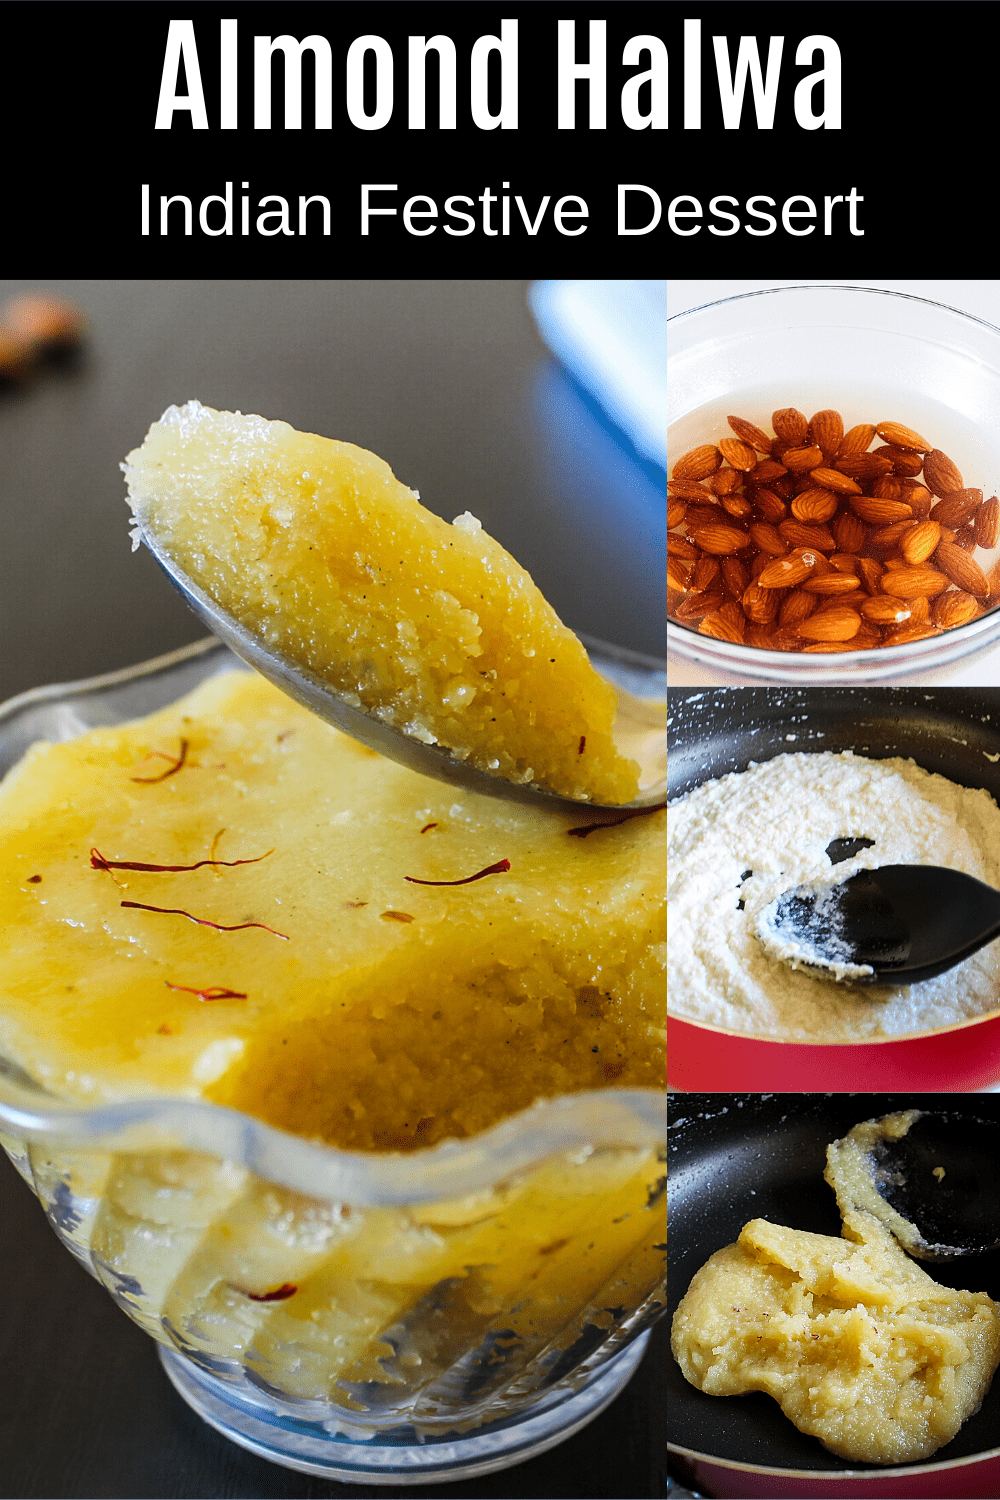 Collage of 4 images showing almond halwa in a bowl with spoon taken, soaked almonds, cooking and ready halwa in a pan